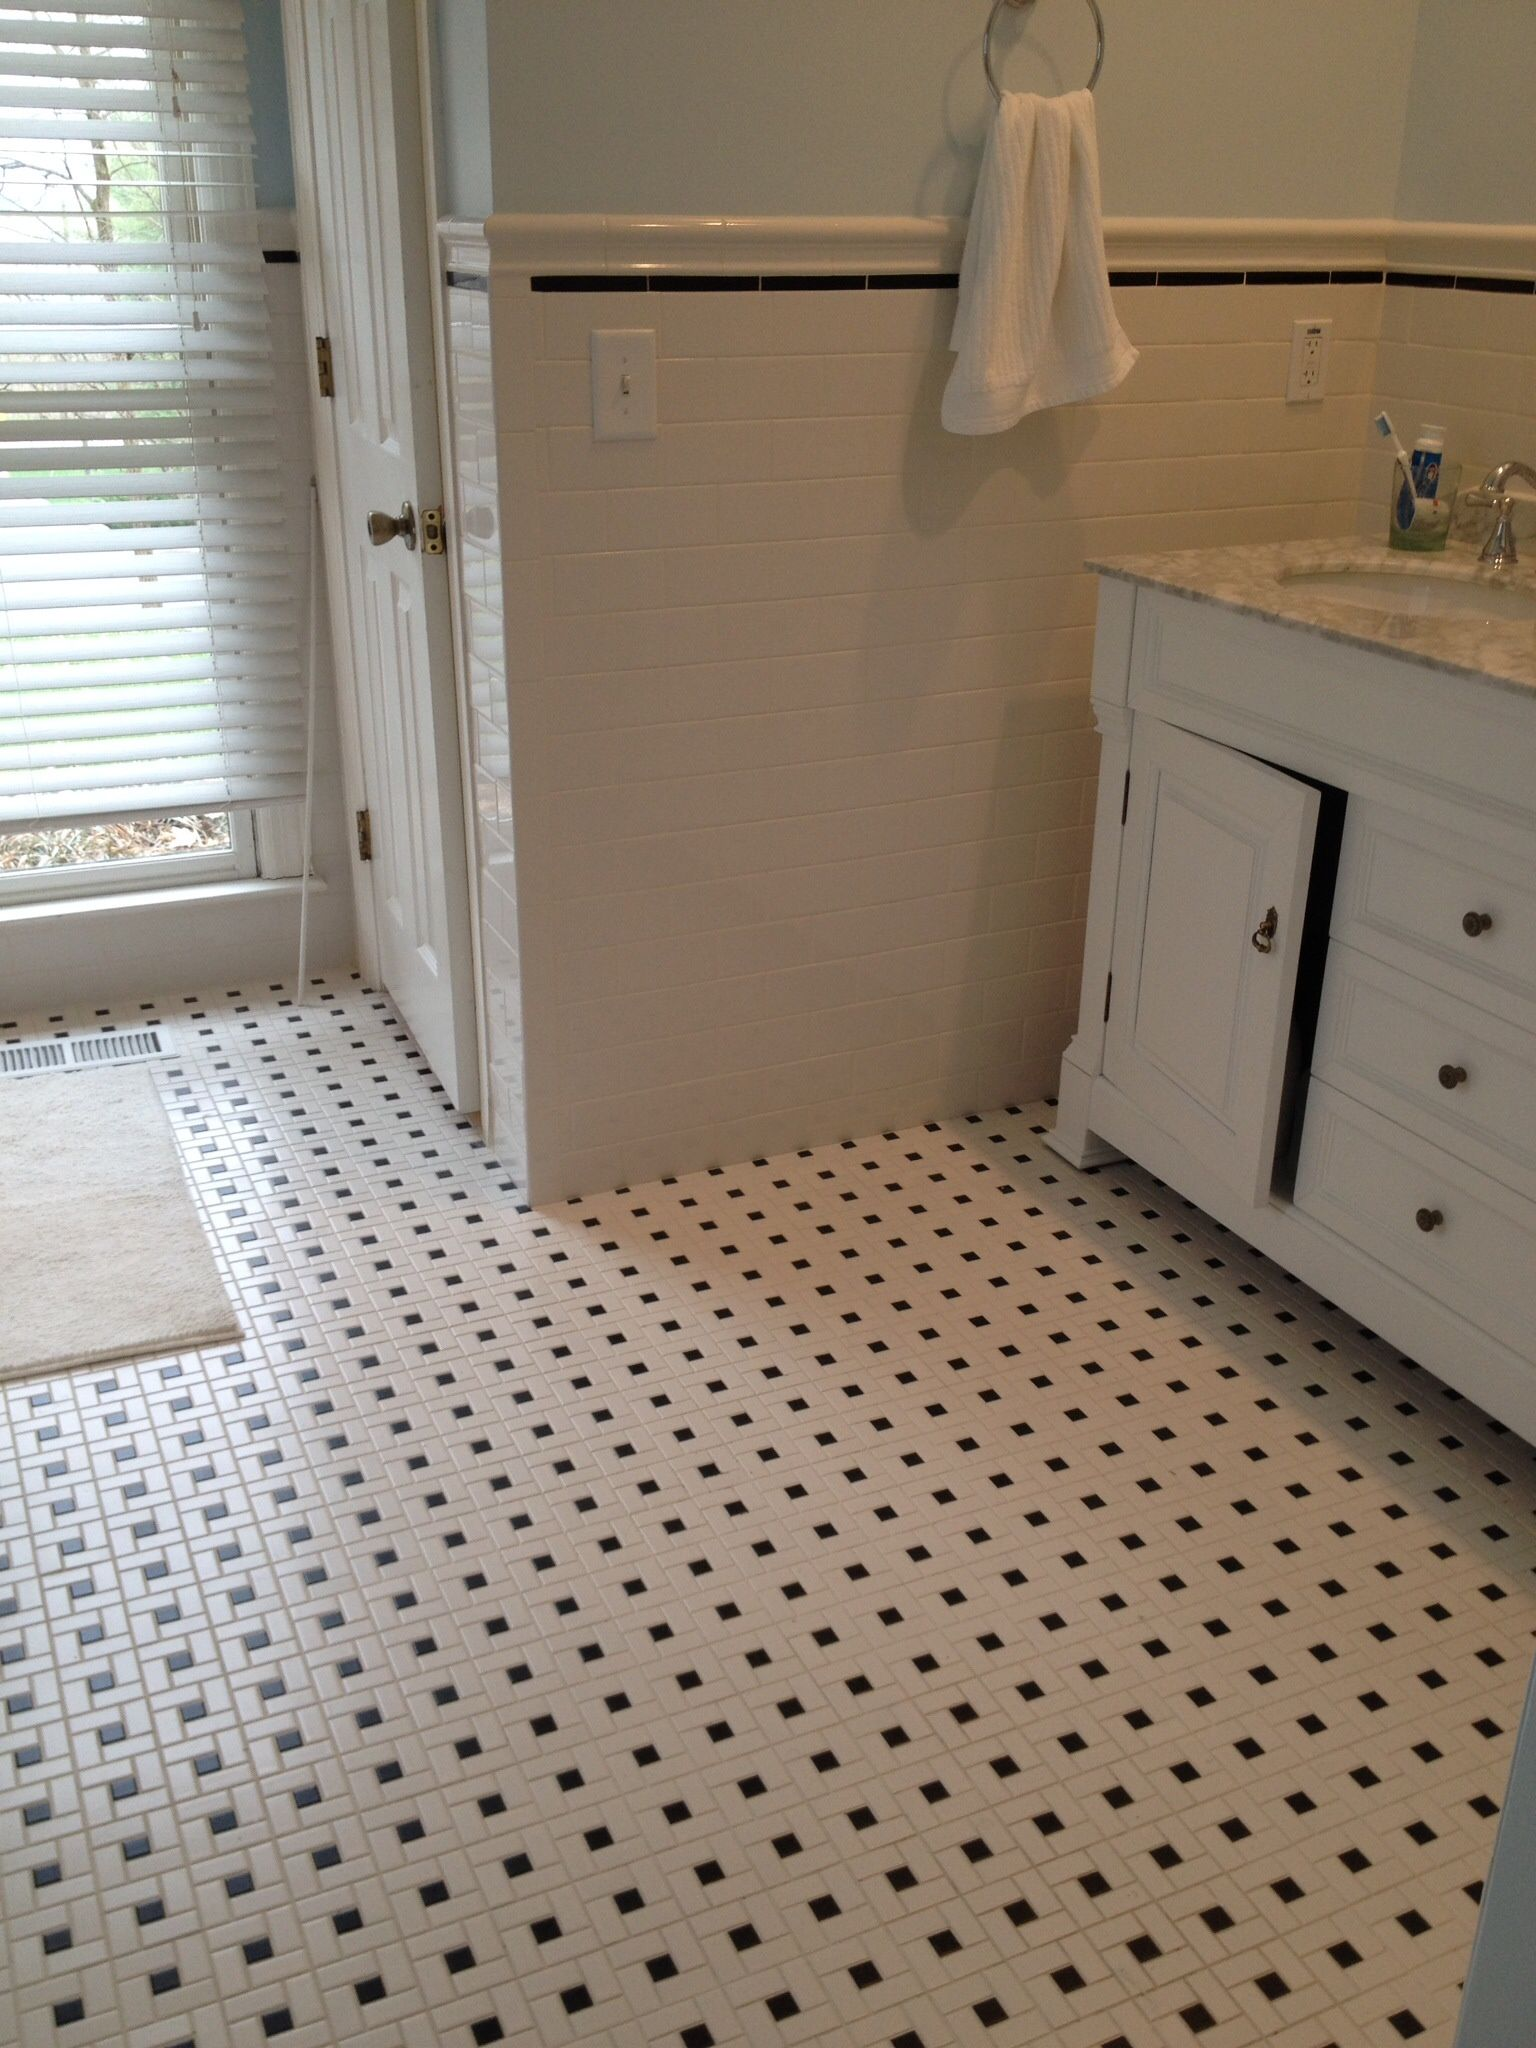 3 X 6 Ceramic Wall Tile With White And Black Pinwheel Mosaic Floor